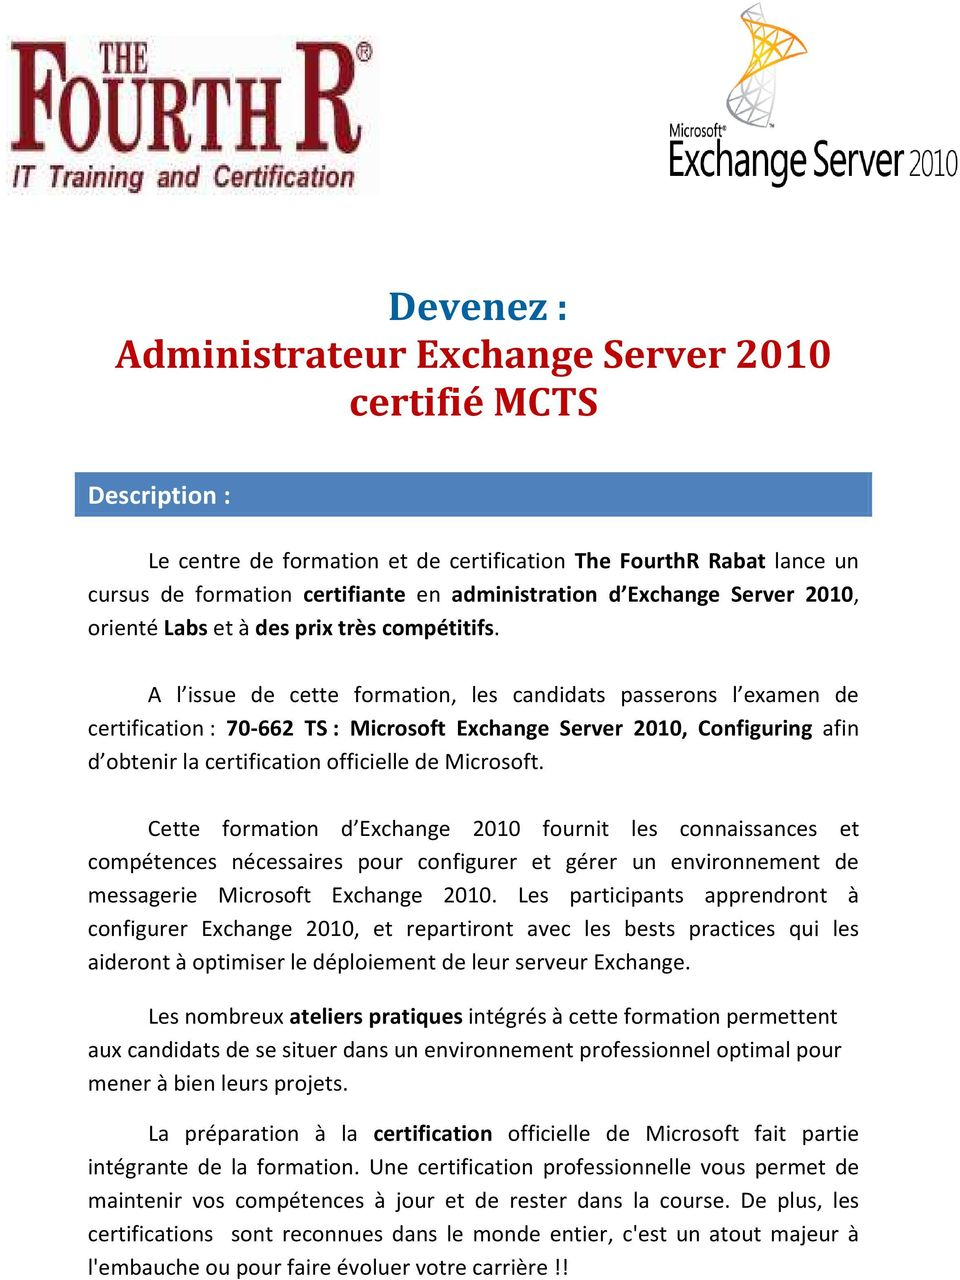 A l issue de cette formation, les candidats passerons l examen de certification : 70-662 TS : Microsoft Exchange Server 2010, Configuring afin d obtenir la certification officielle de Microsoft.